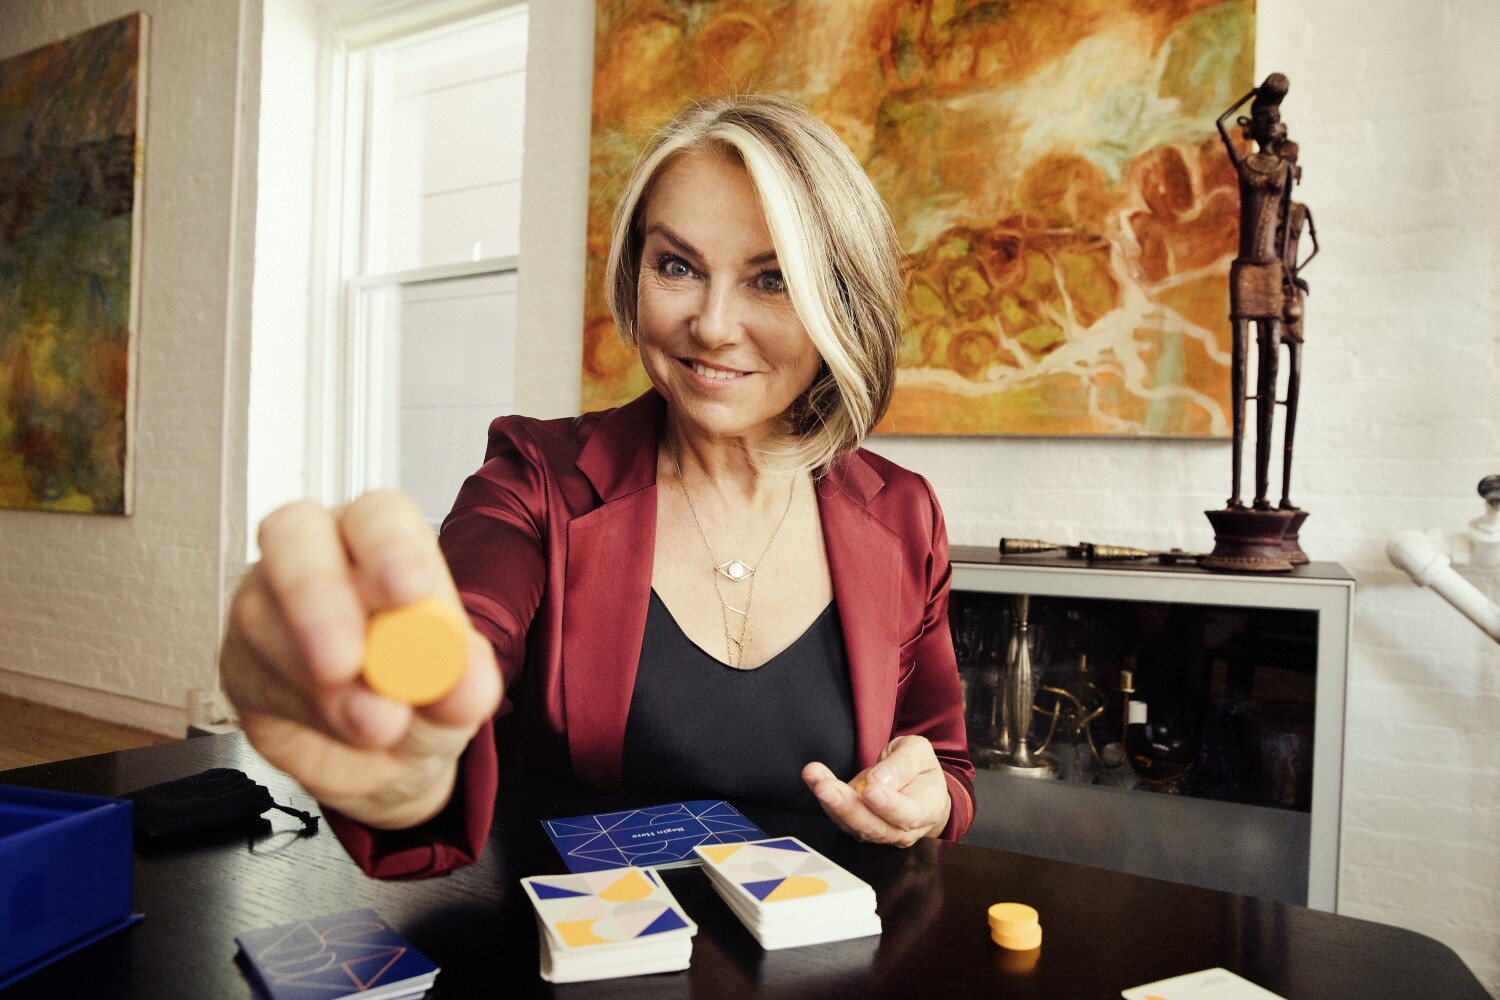 Games are therapy. Don't believe us? Ask famed relationship therapist Esther Perel